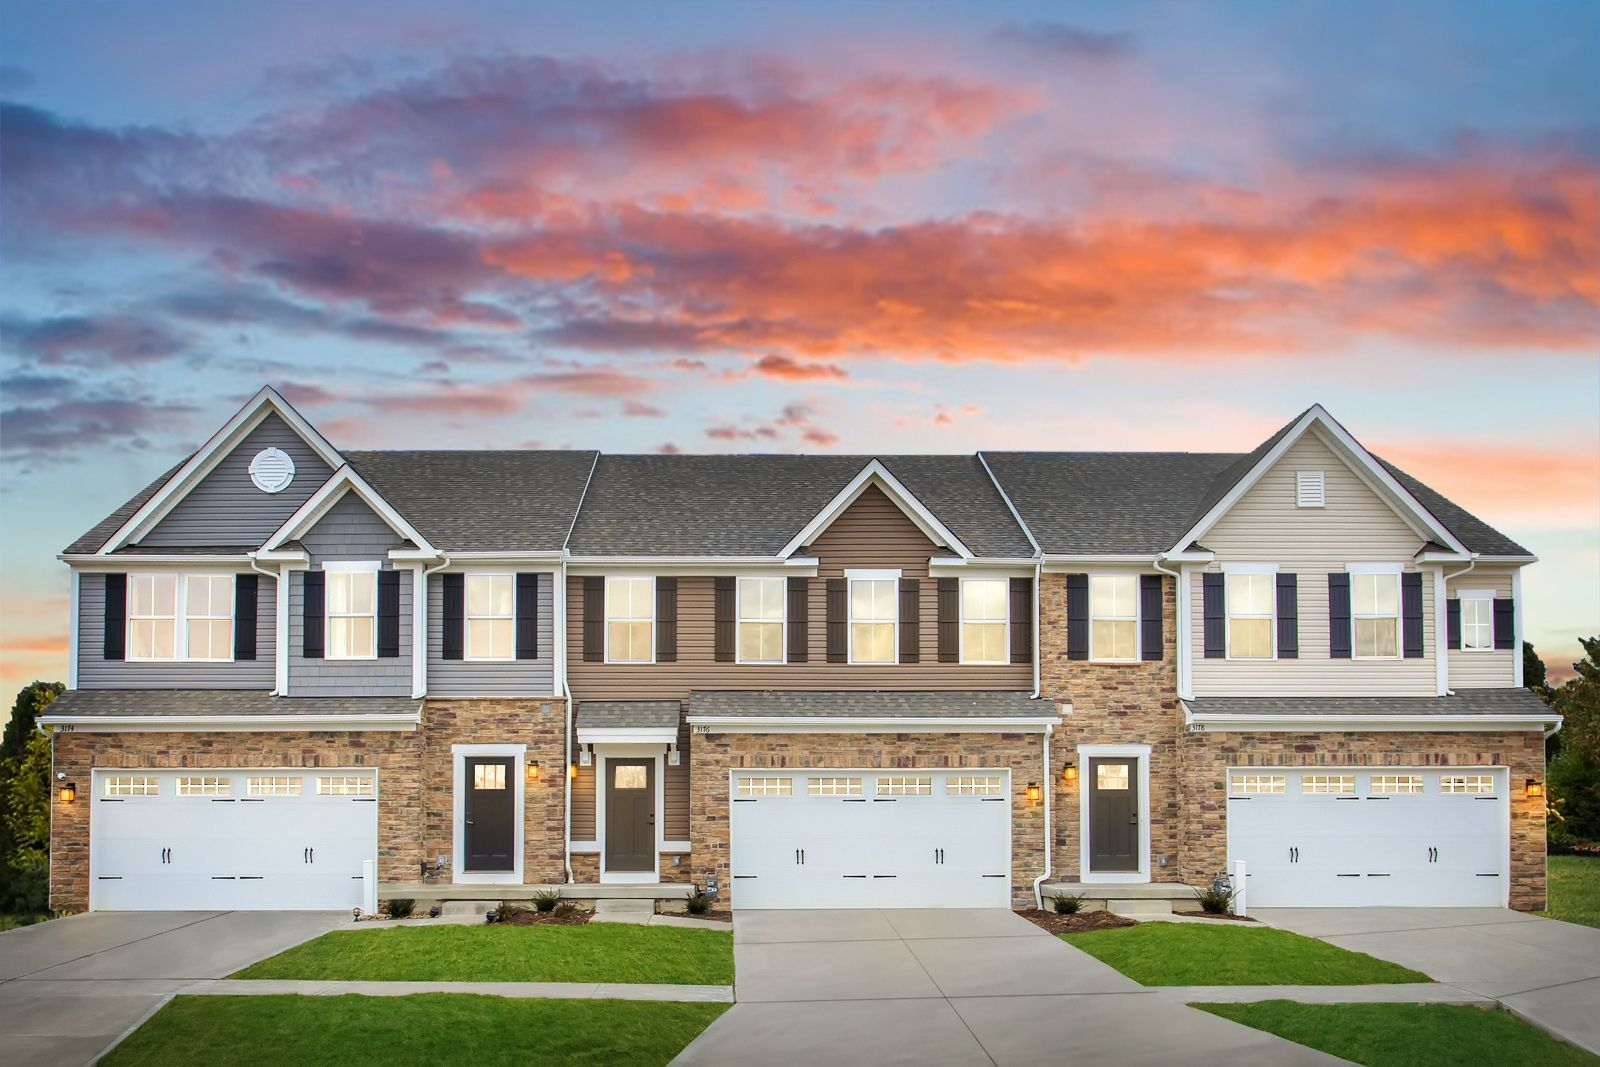 Overlook at Creekside: Over 95% Sold Out! Hurry In!:New luxury 2-story townhomes with 2-car garages in Spring-Ford schools, near shopping and dining, just 20 minutes to King of Prussia.Click here to schedule your visit!